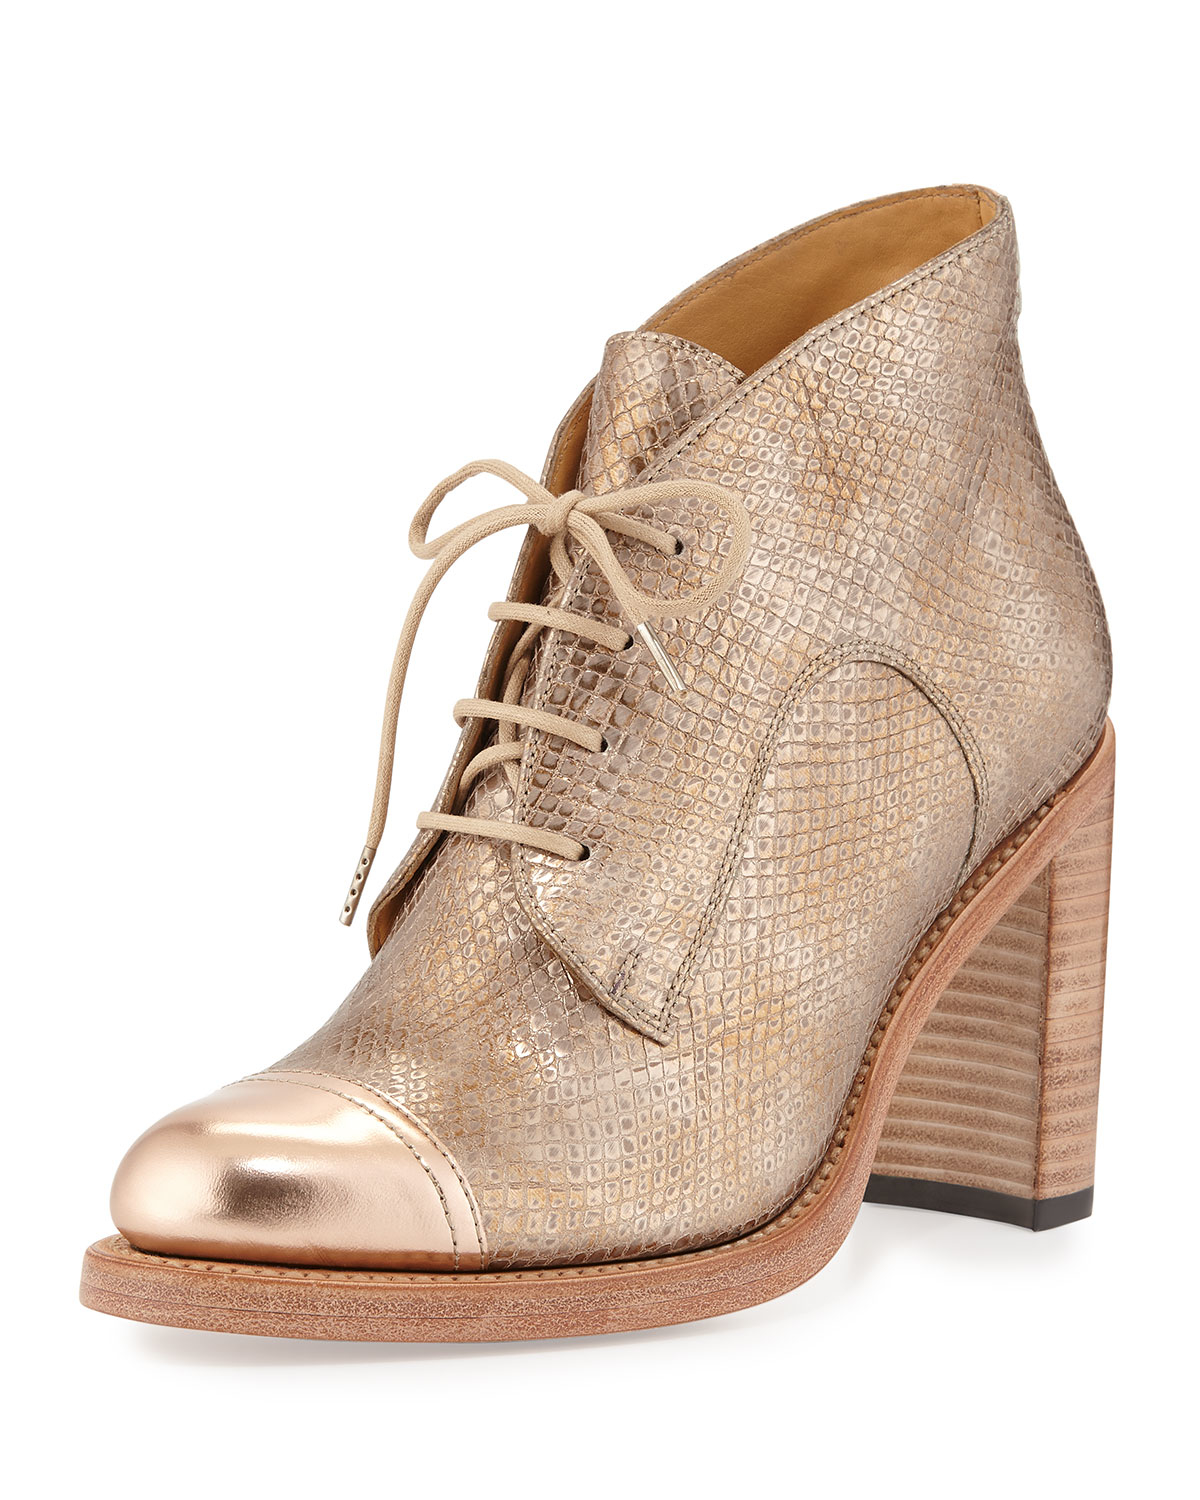 The Office of Angela Scott Leather Round-Toe Booties discount 2014 KWmXCQN5P